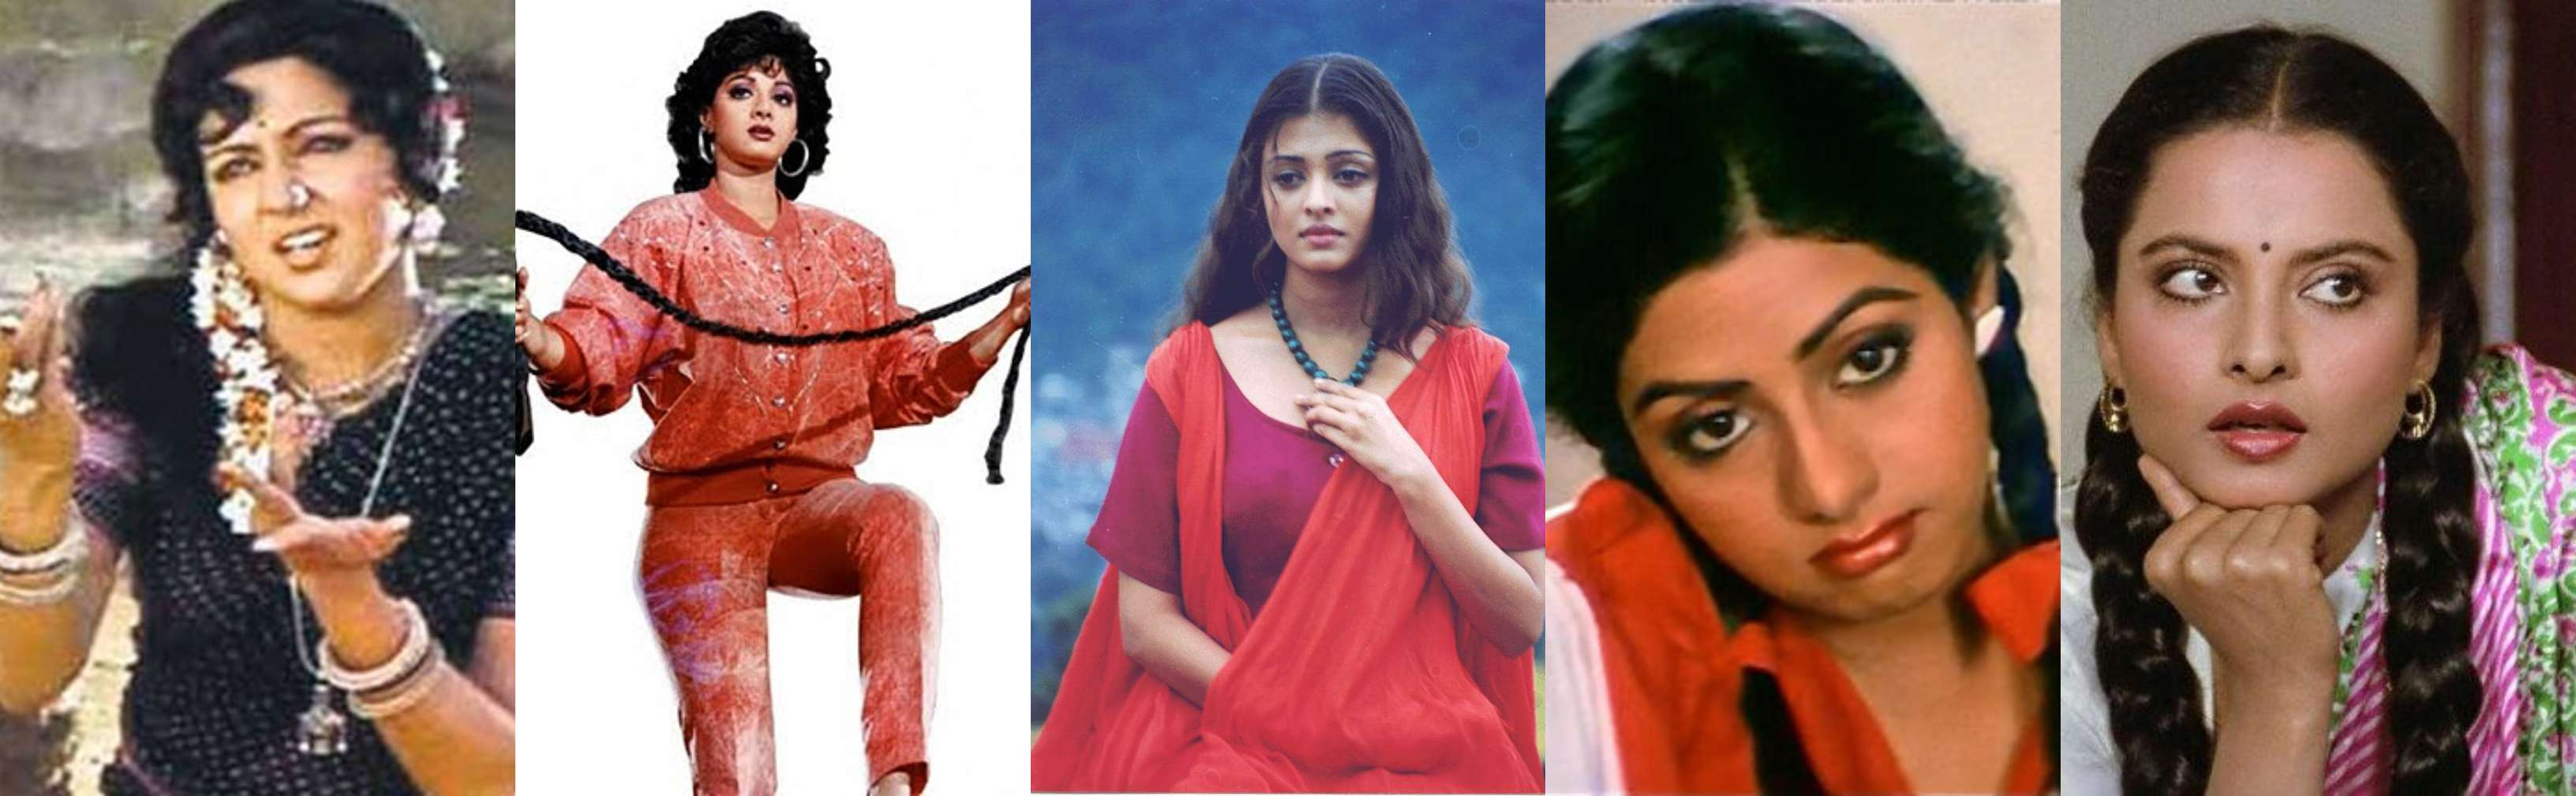 6 Bollywood Characters You Didn't Know Were Feminist   Feminism In India